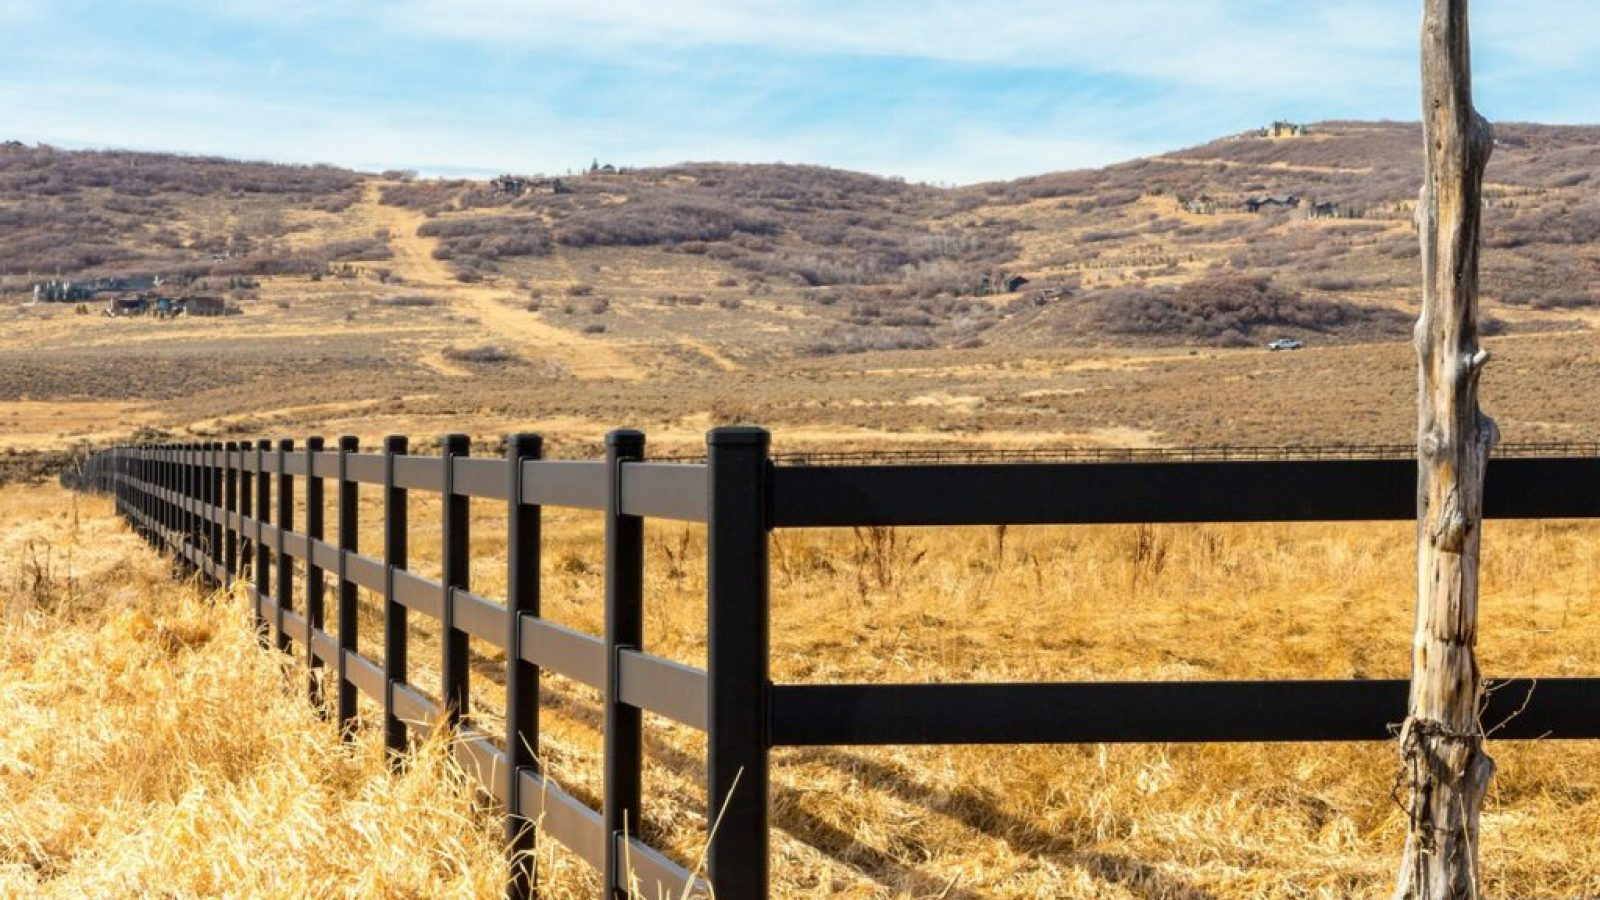 Paddock Fencing in Field - Stock and Noble